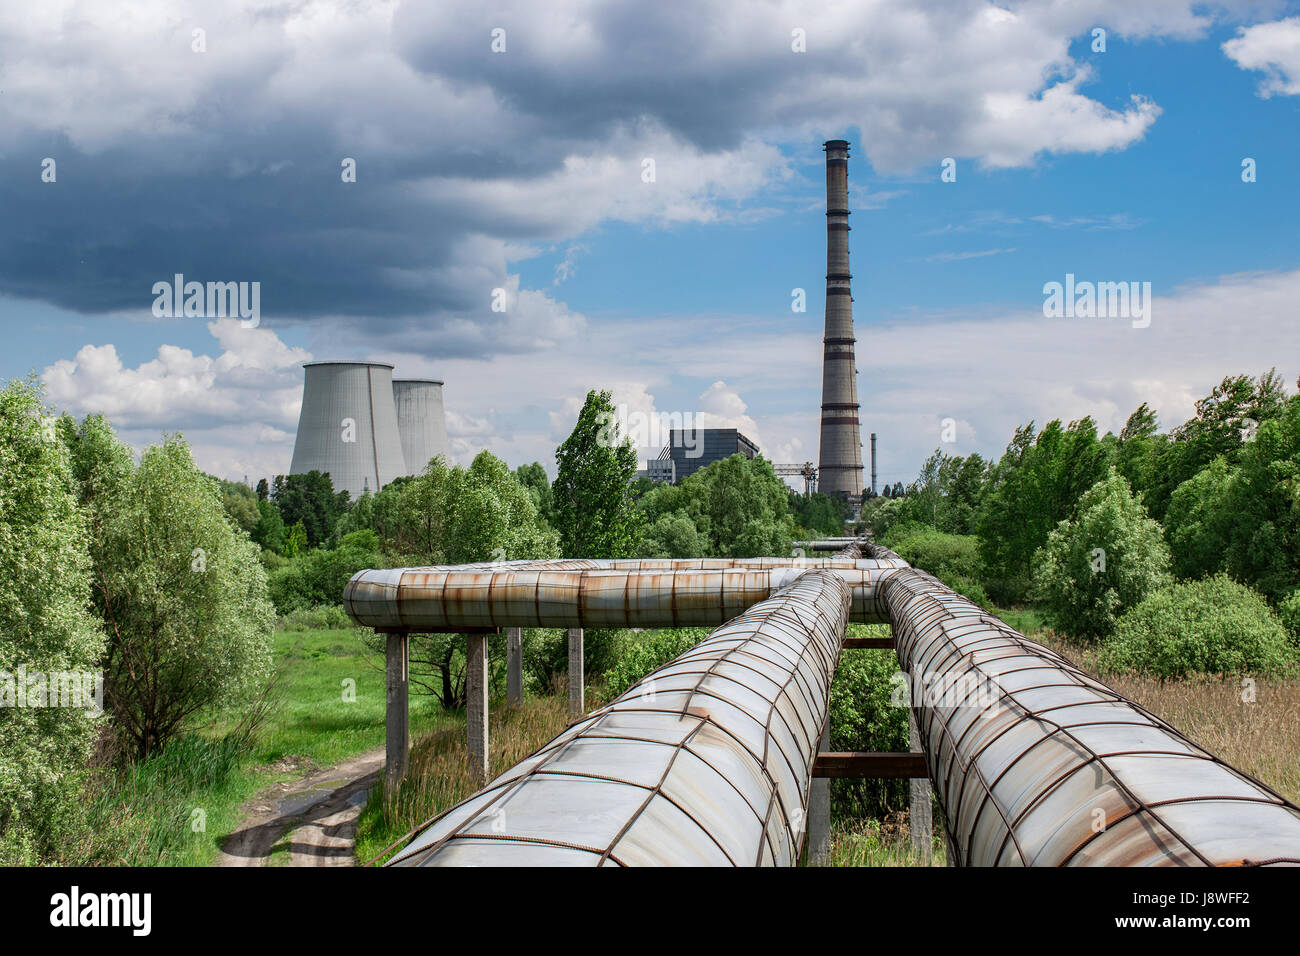 Hot water and central heating pipelines with a cogeneration plant ...